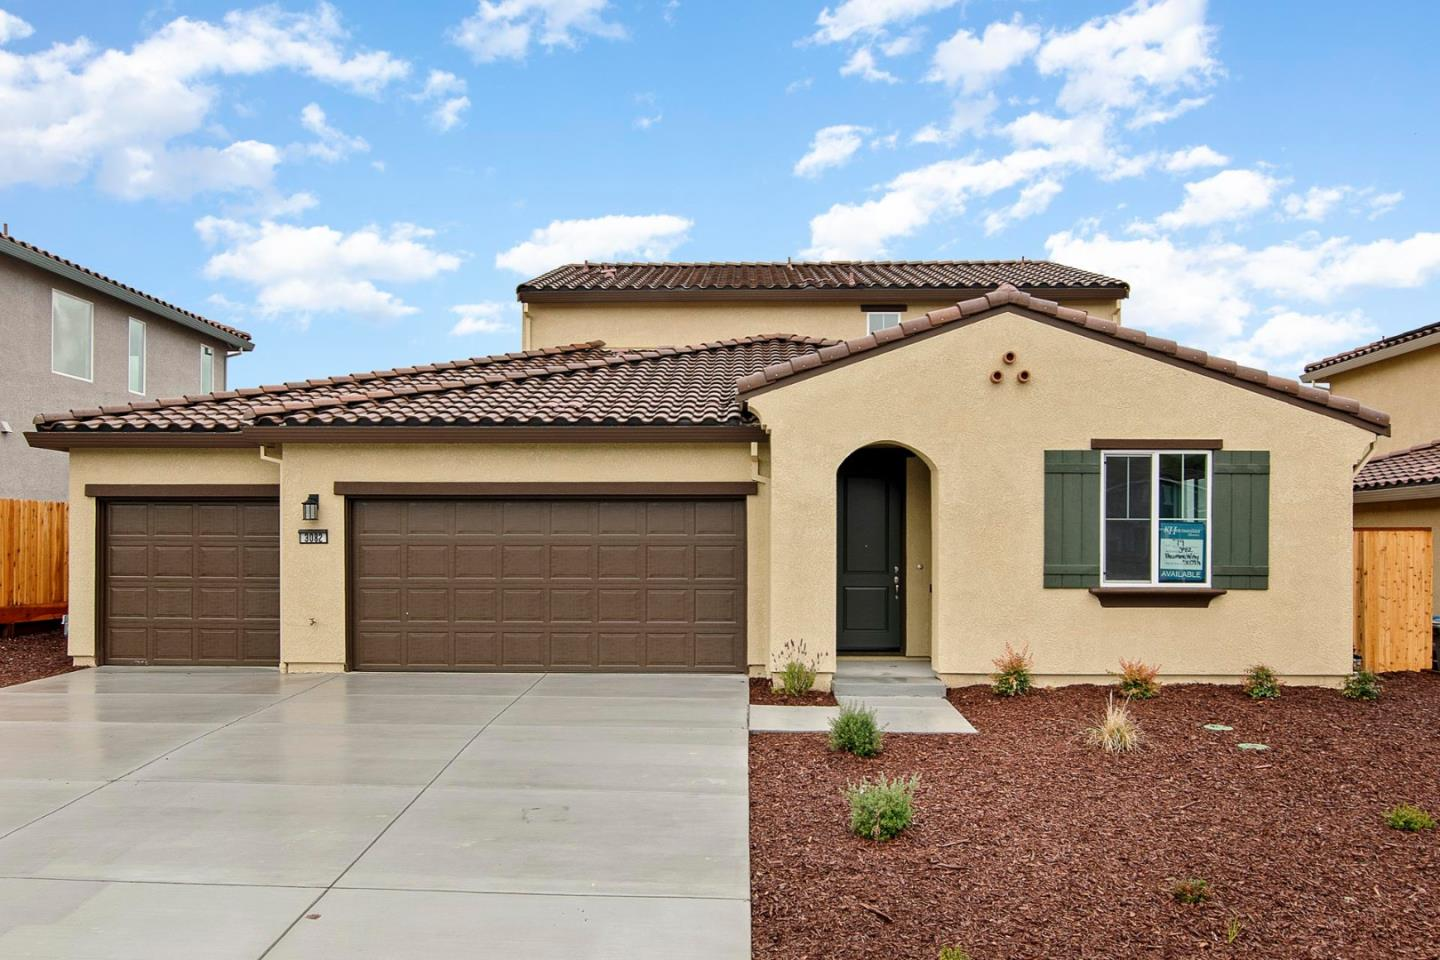 Detail Gallery Image 1 of 13 For 3082 Palomino Way, Hollister, CA 95023 - 4 Beds | 2/1 Baths